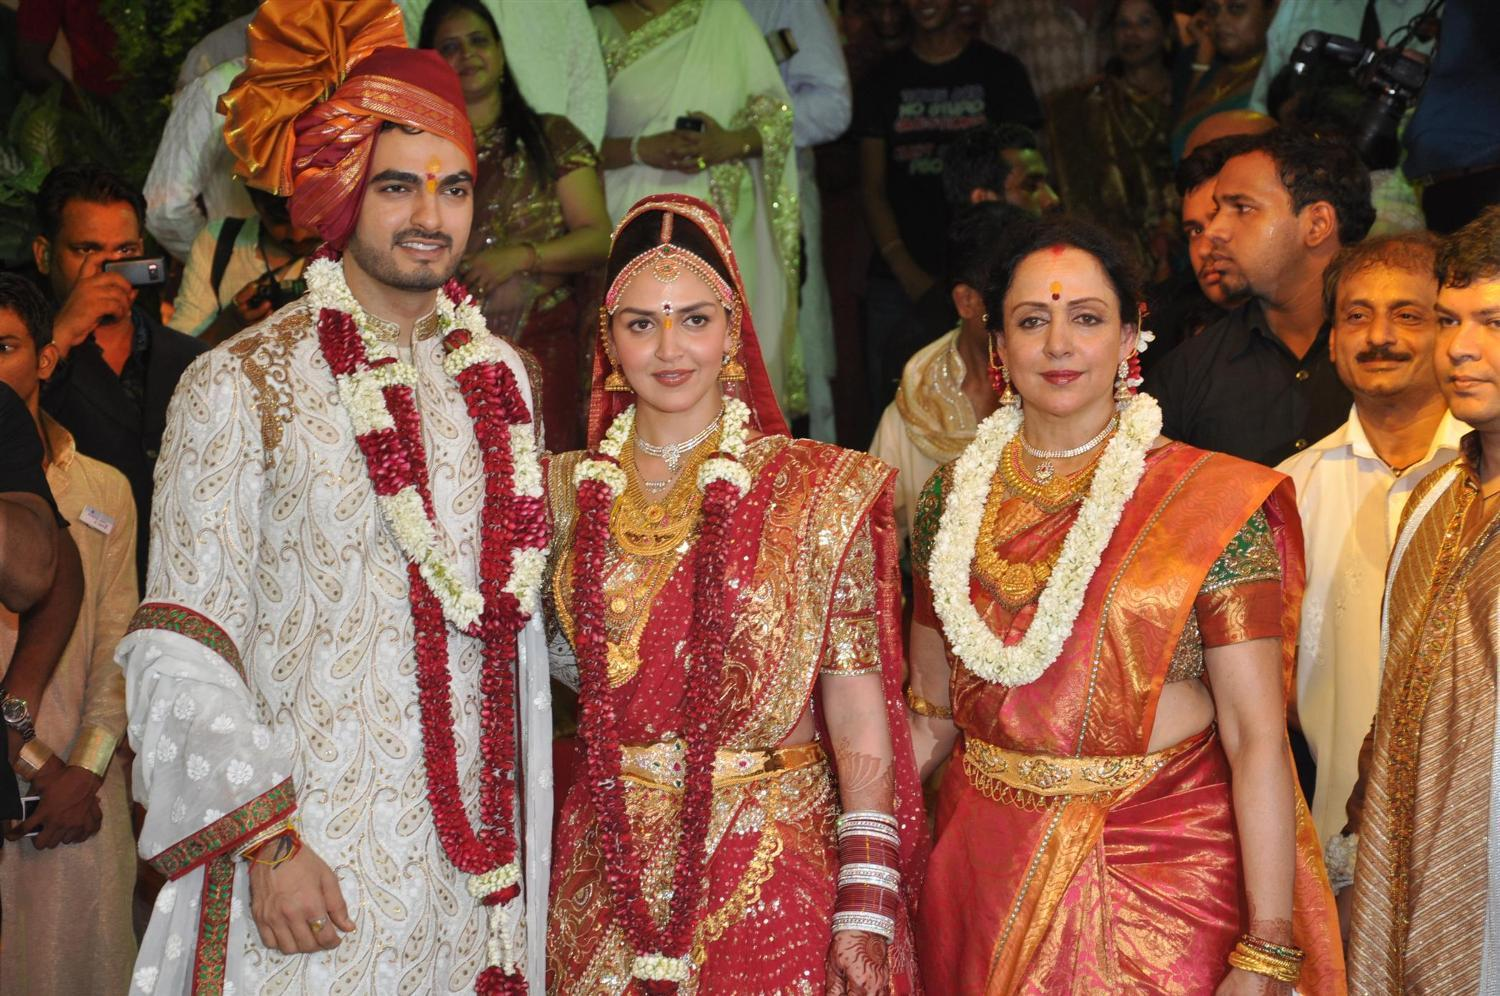 Wedding Pictures Of Bollywood Stars http://coolindiancinema.blogspot.com/